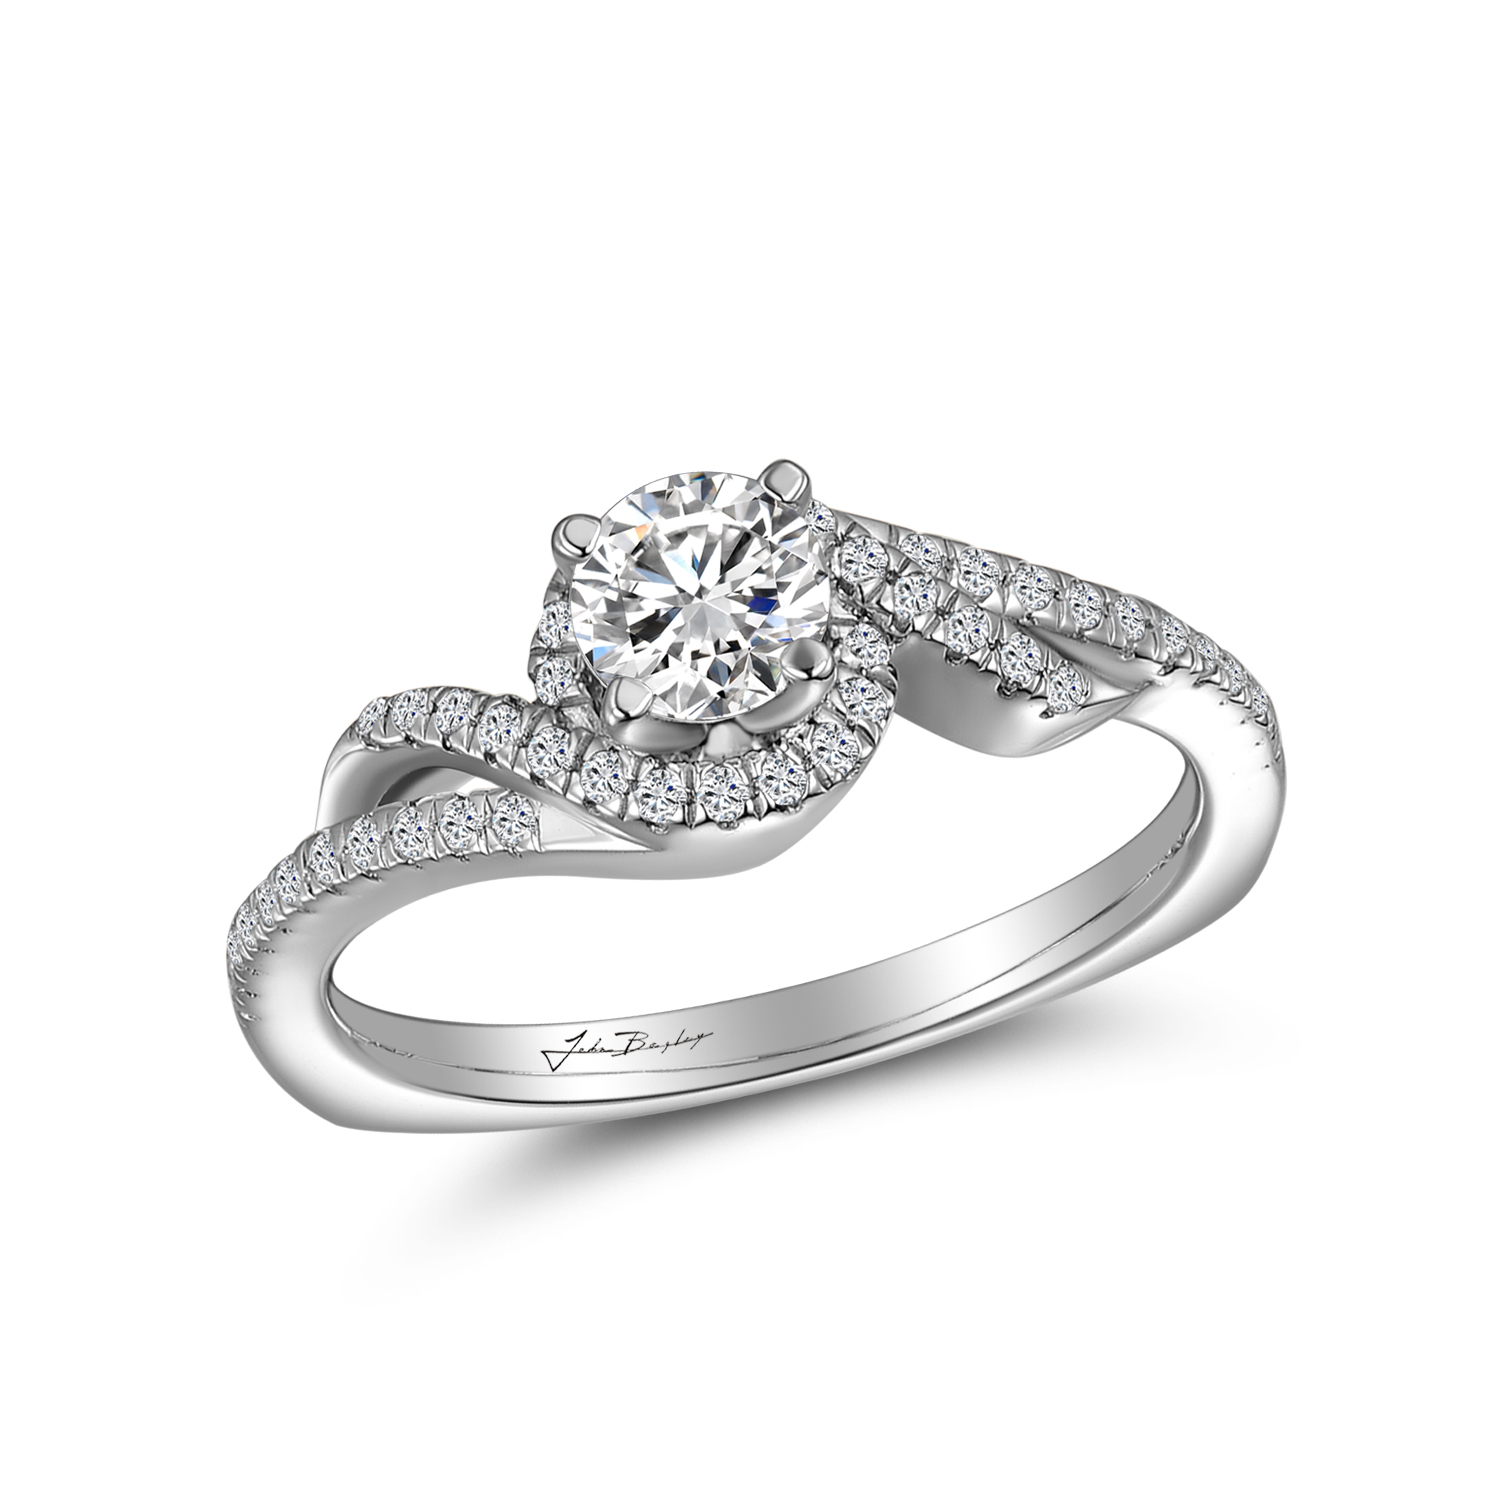 JB Signature Engagement Ring